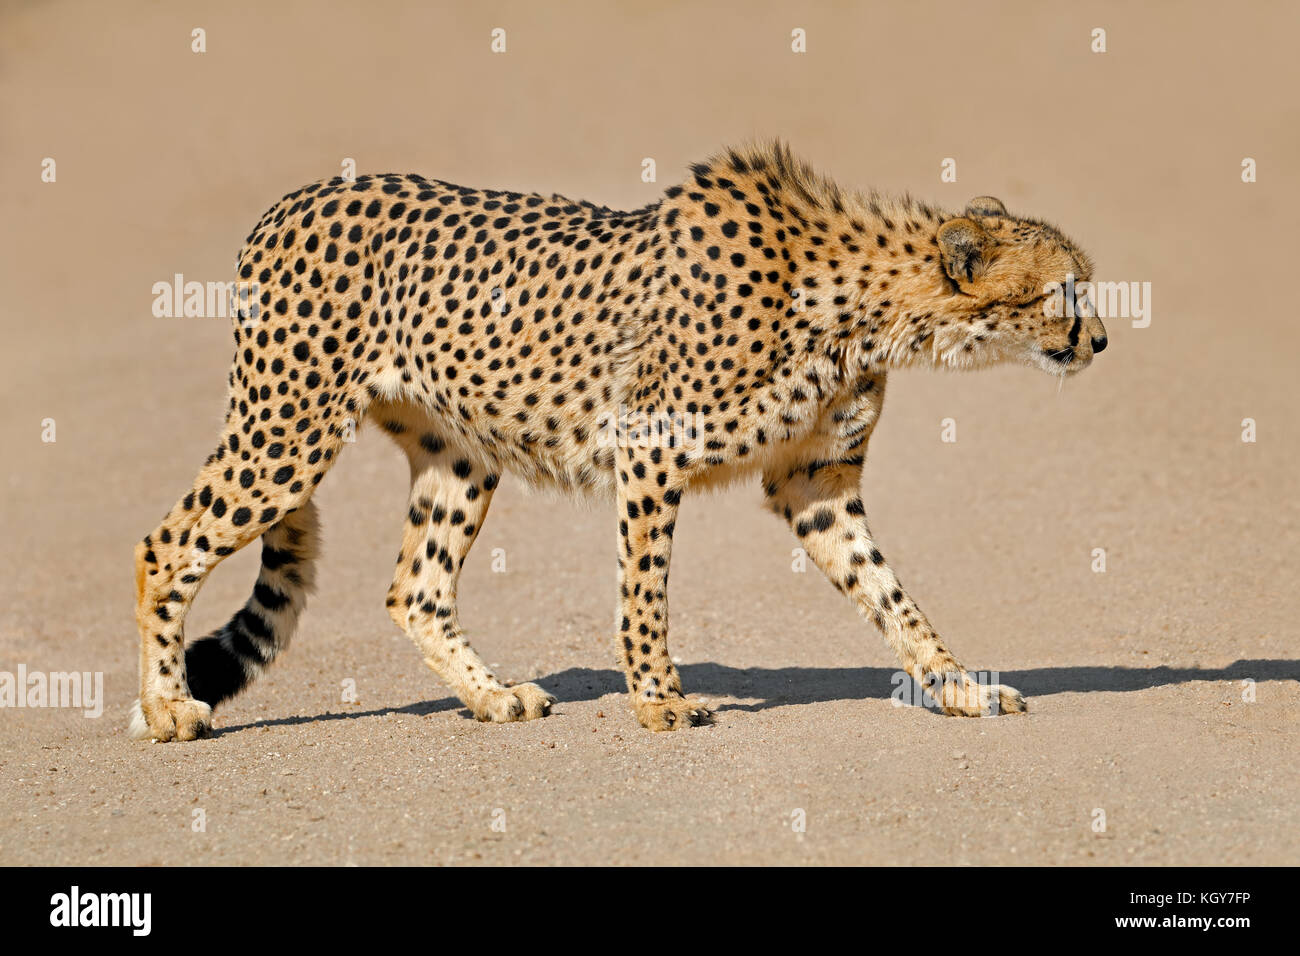 A cheetah (Acinonyx jubatus) stalking prey, South Africa - Stock Image